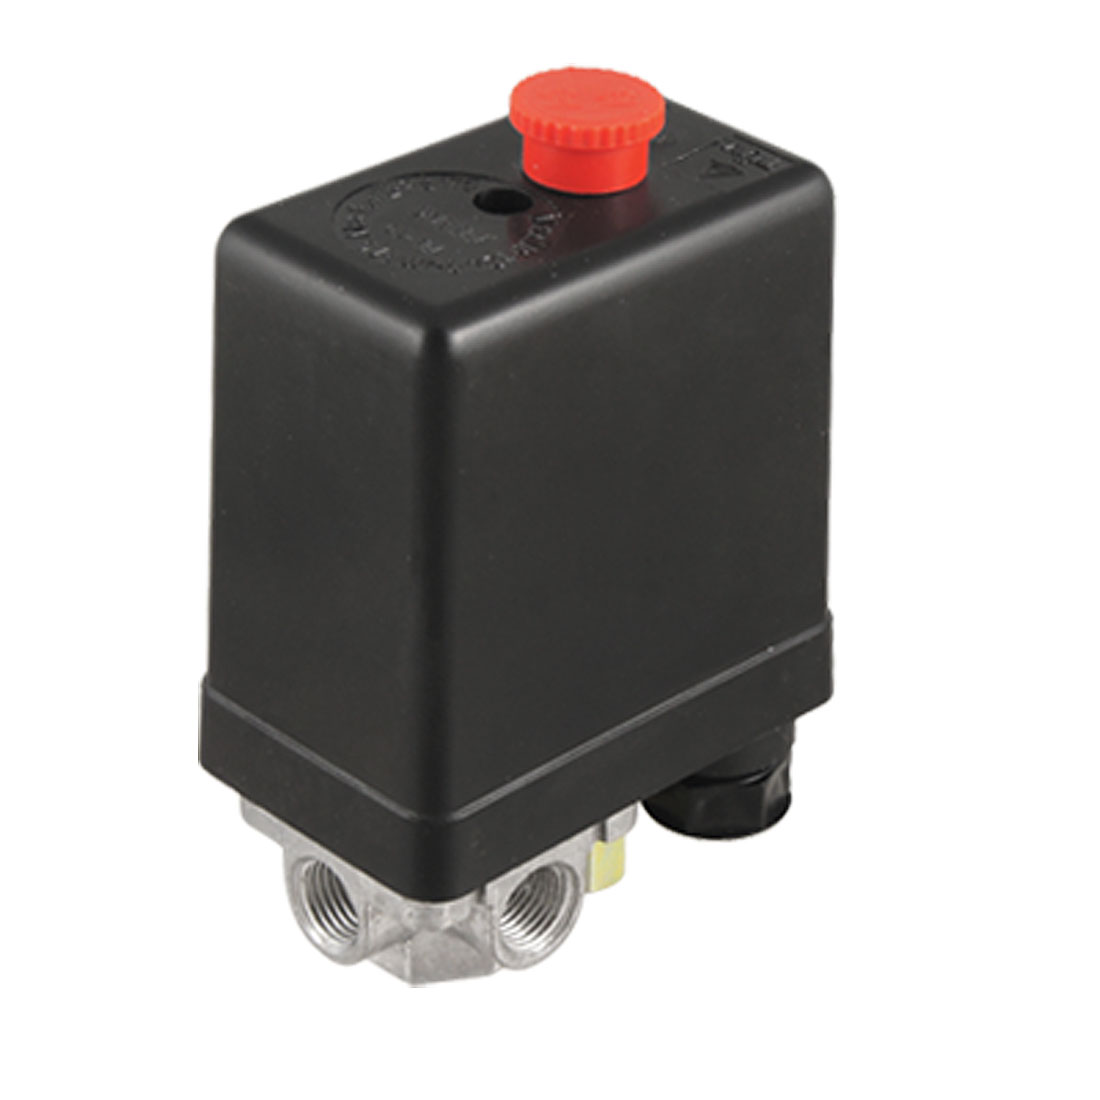 Air Compressor Pump Pressure Switch Control Valve 4 Port 175 PSI 1/4 NPT